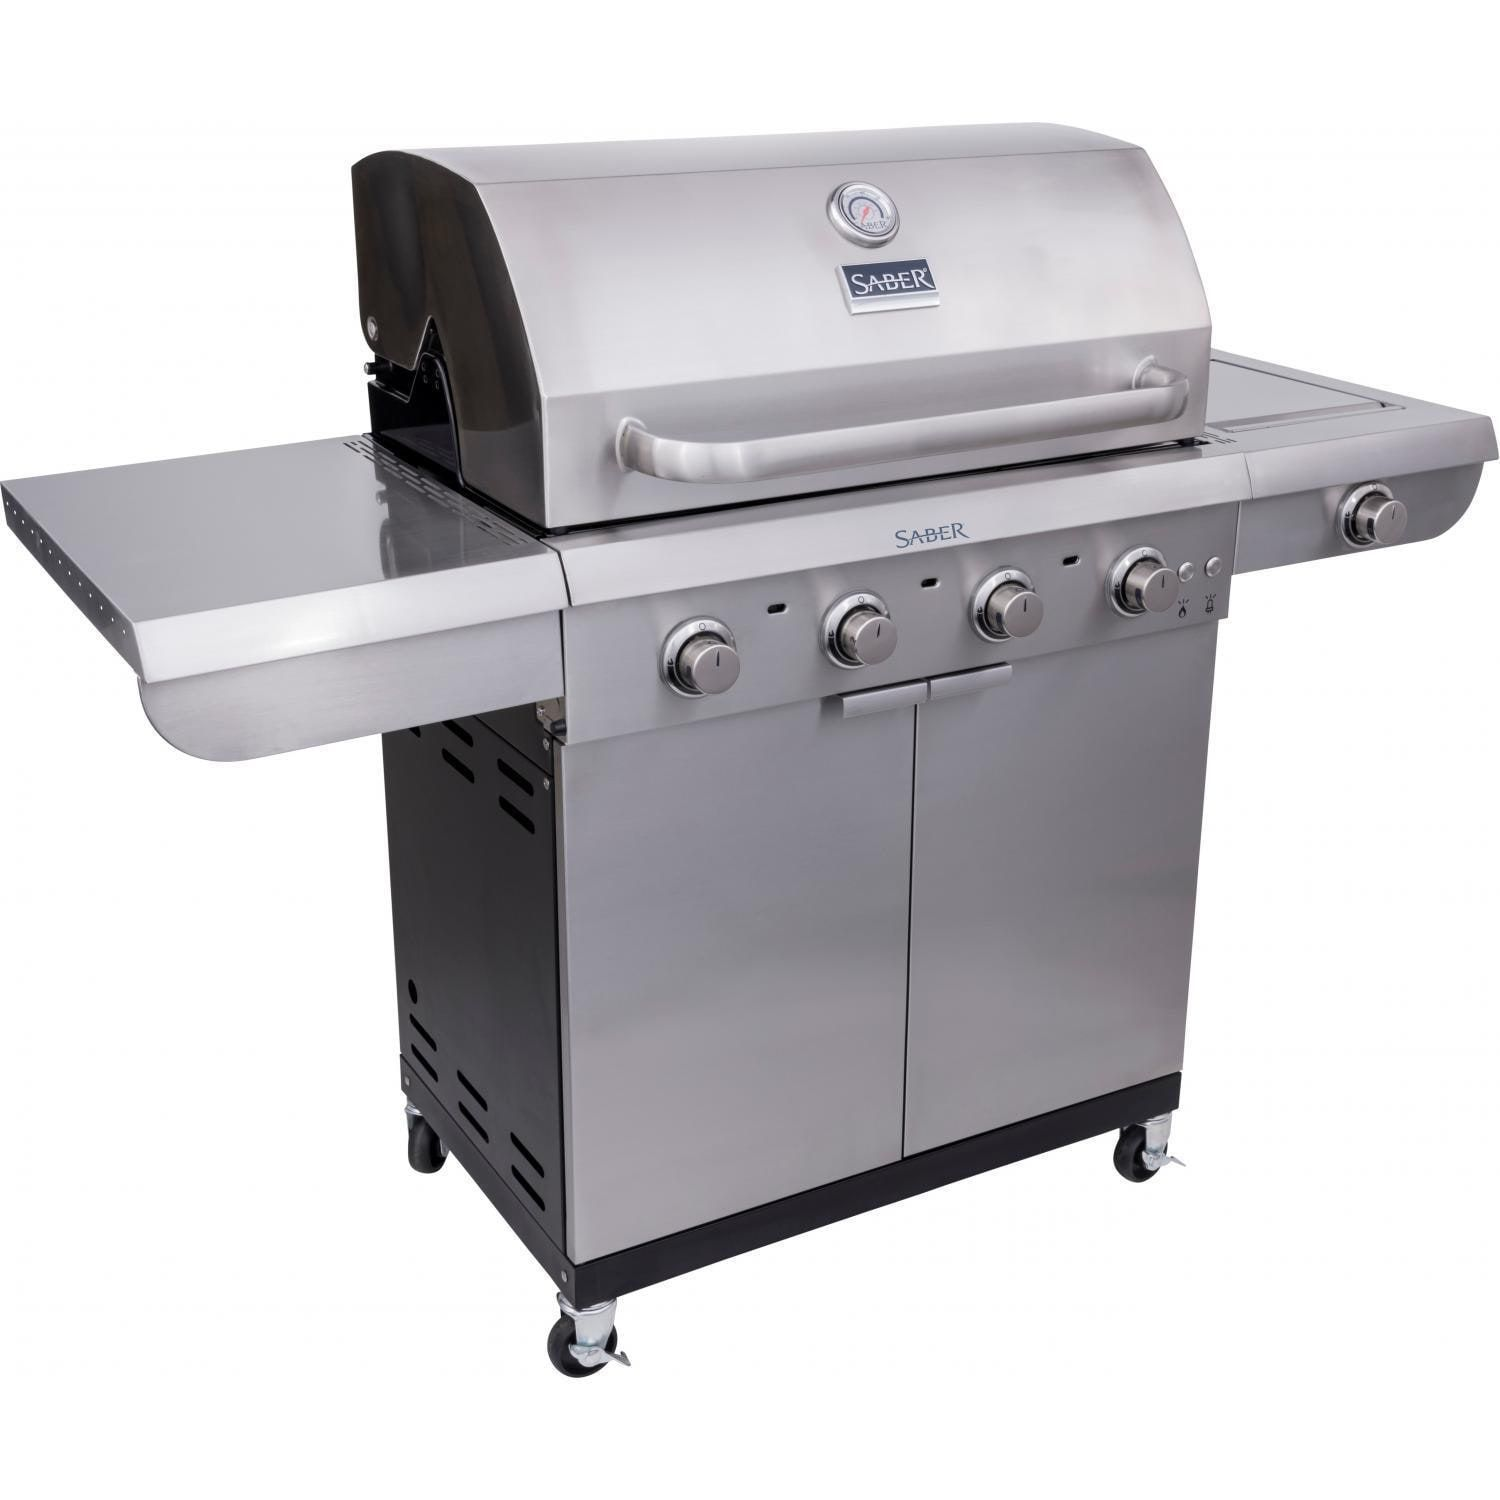 Saber Select 4 Burner 30 Inch Infrared Propane Gas Grill With Side Burner R52sc0421 Bbqguys In 2021 Gas Grill 3 Burner Gas Grill Propane Gas Grill Propane grill with side burner